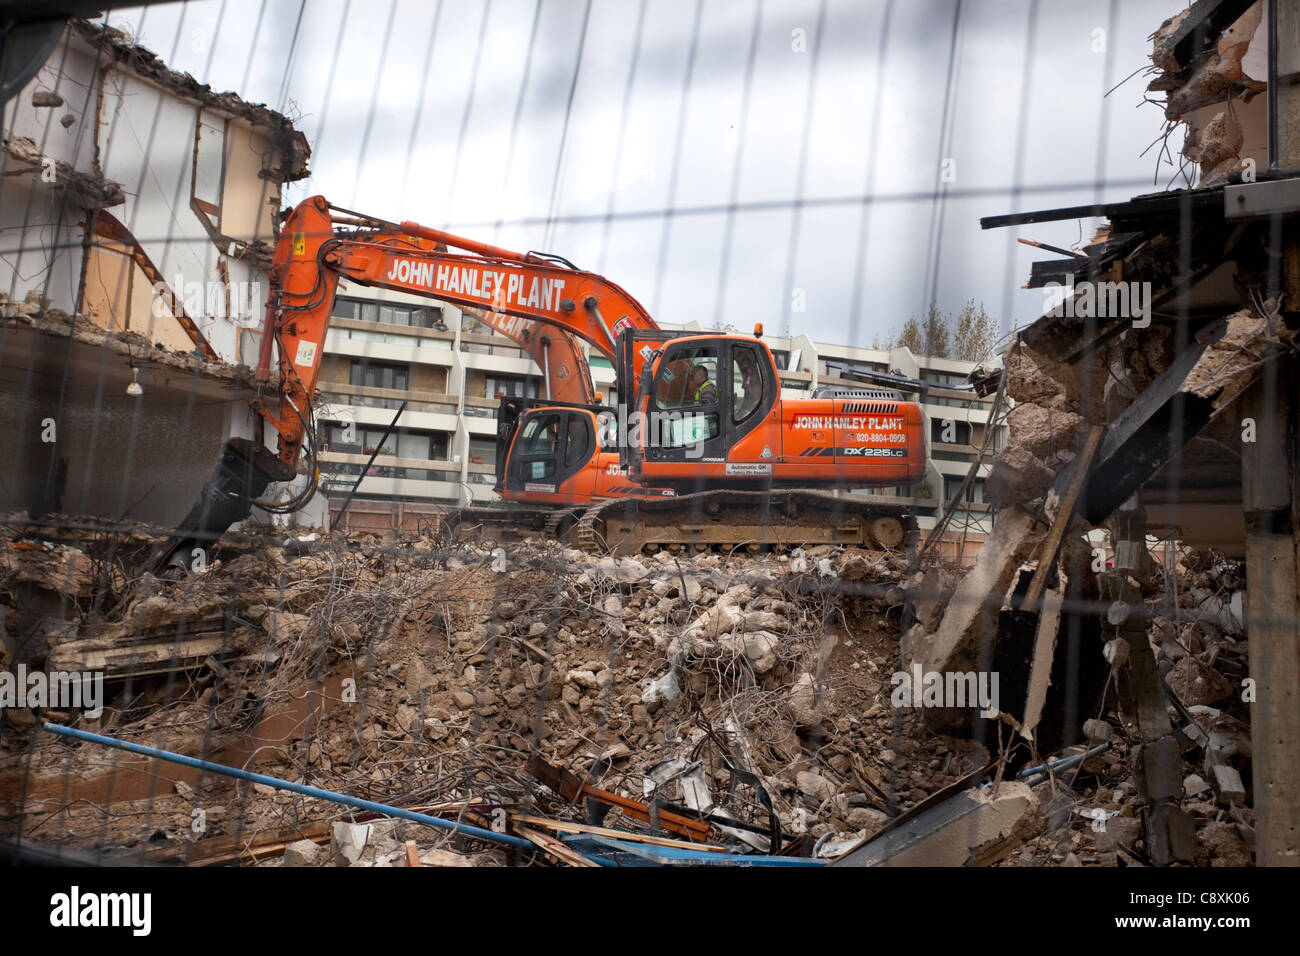 Demolition site and mechanical excavator - Stock Image